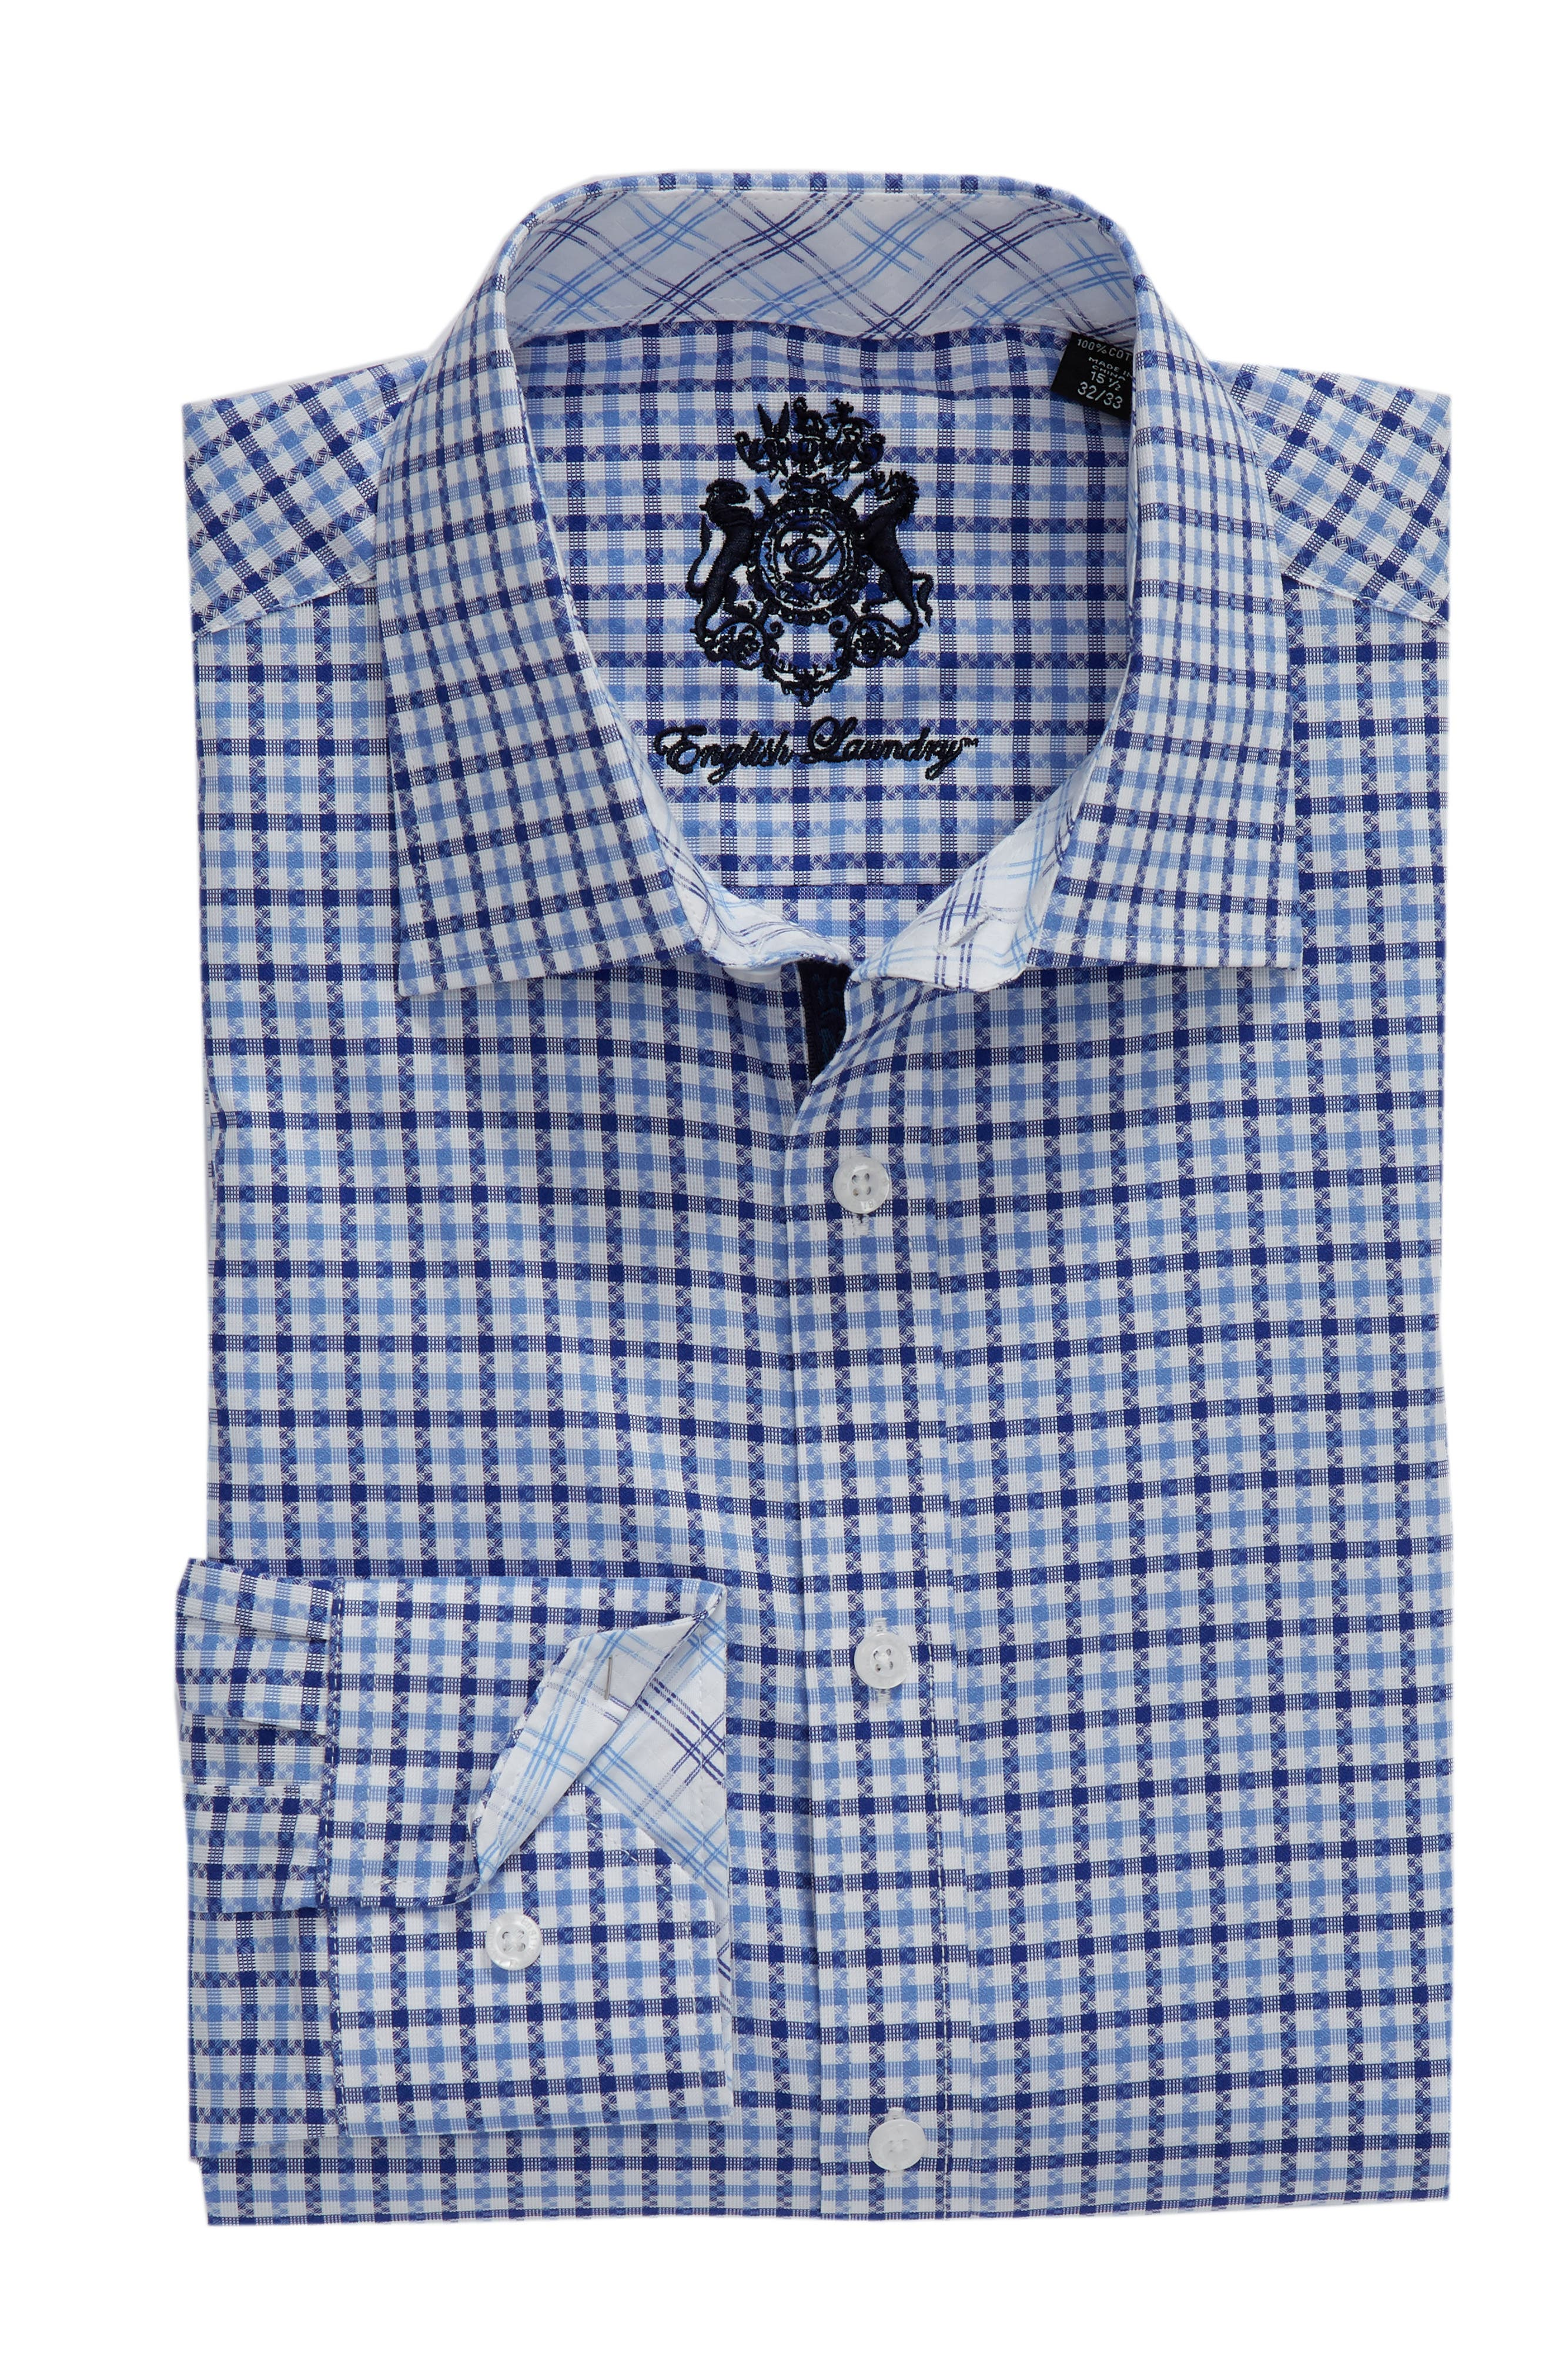 Regular Fit Check Dress Shirt,                             Alternate thumbnail 5, color,                             BLUE